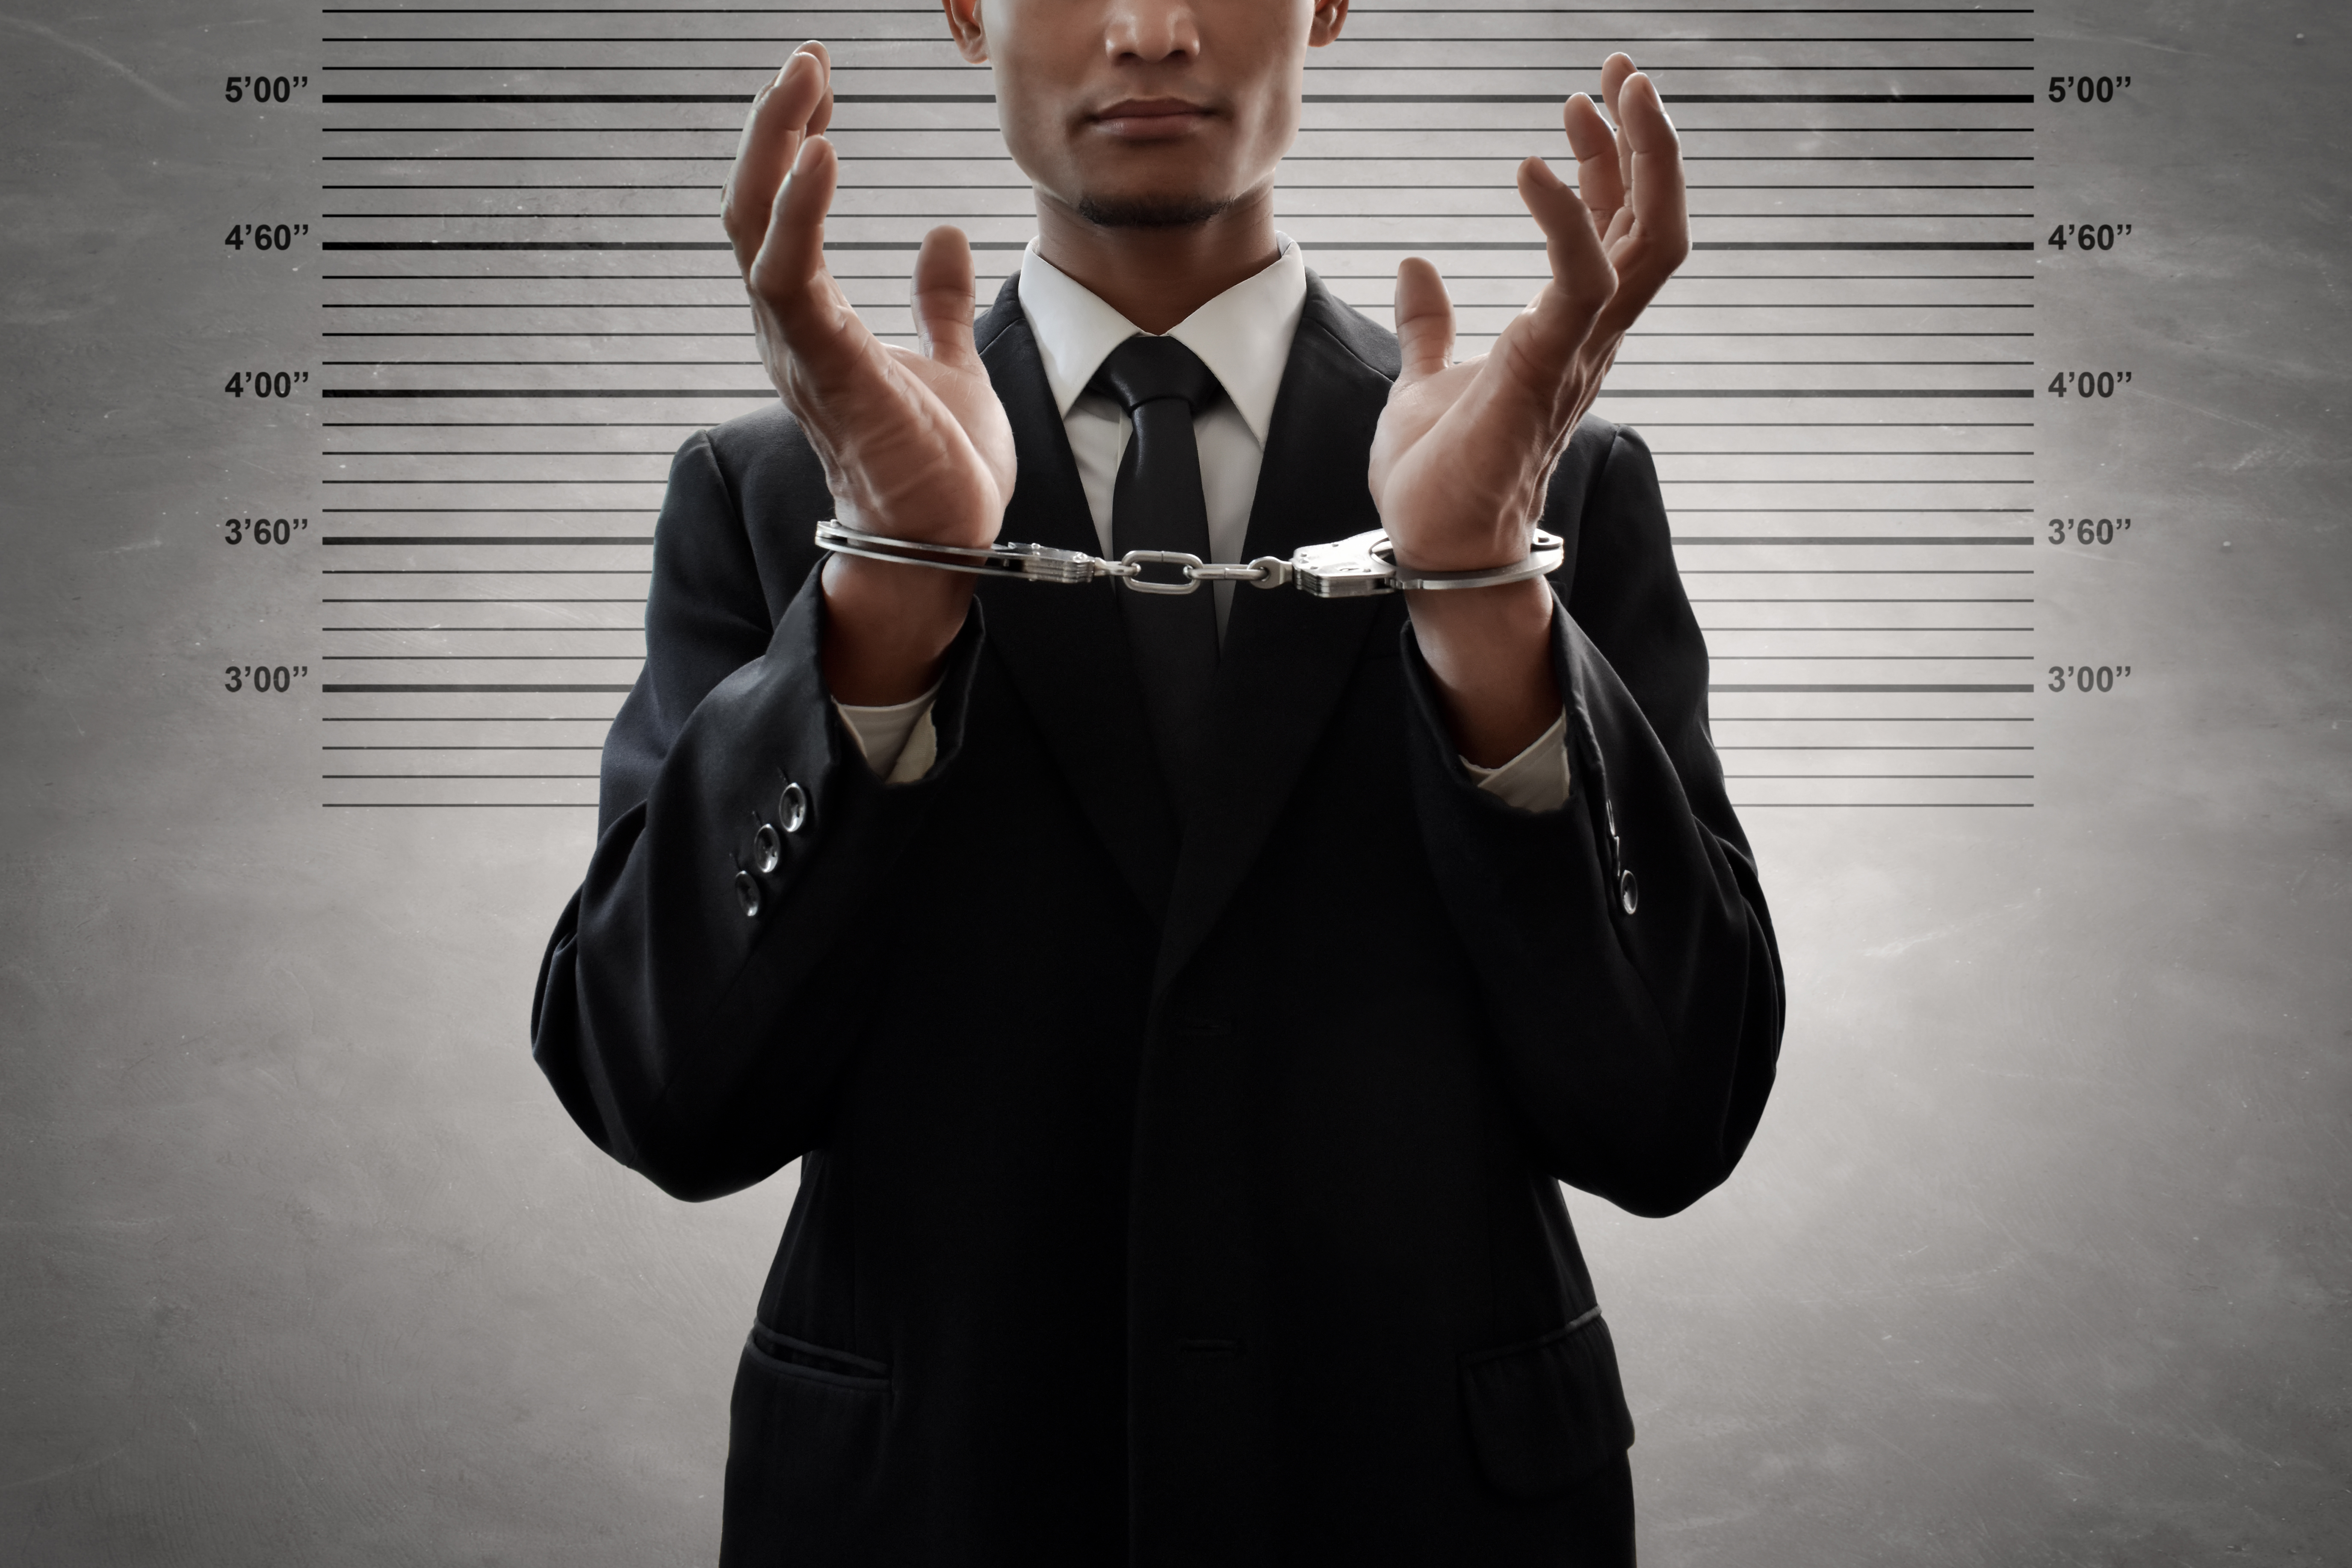 Rescinding a Job Offer for an Arrest Record | Career Trend